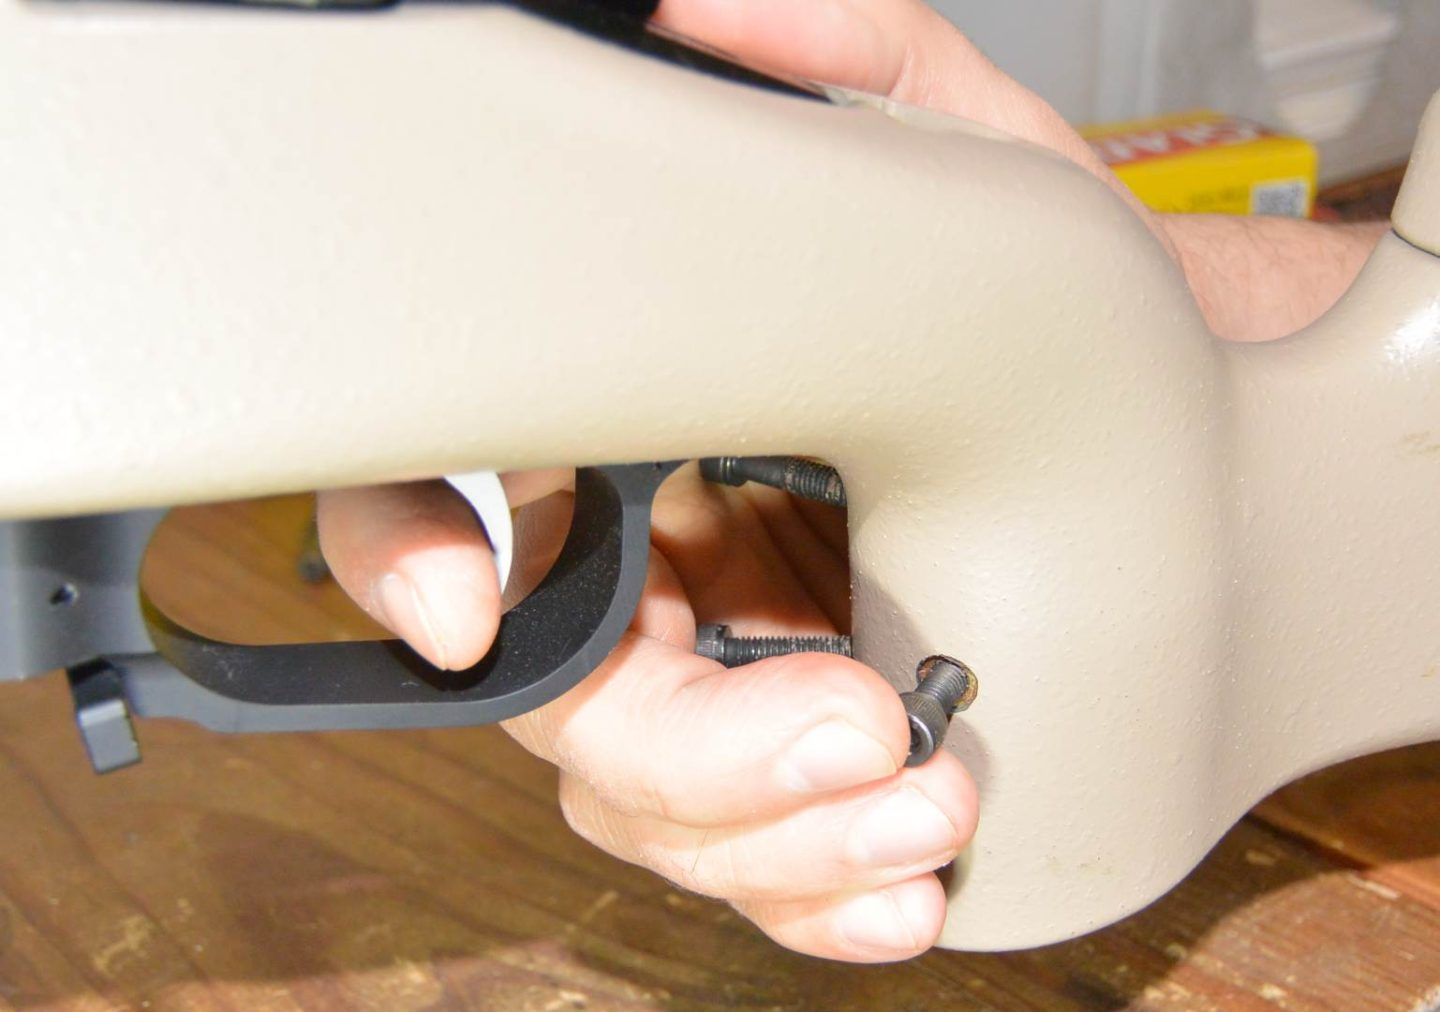 Screws in place outlining where the molded grip will eventually be